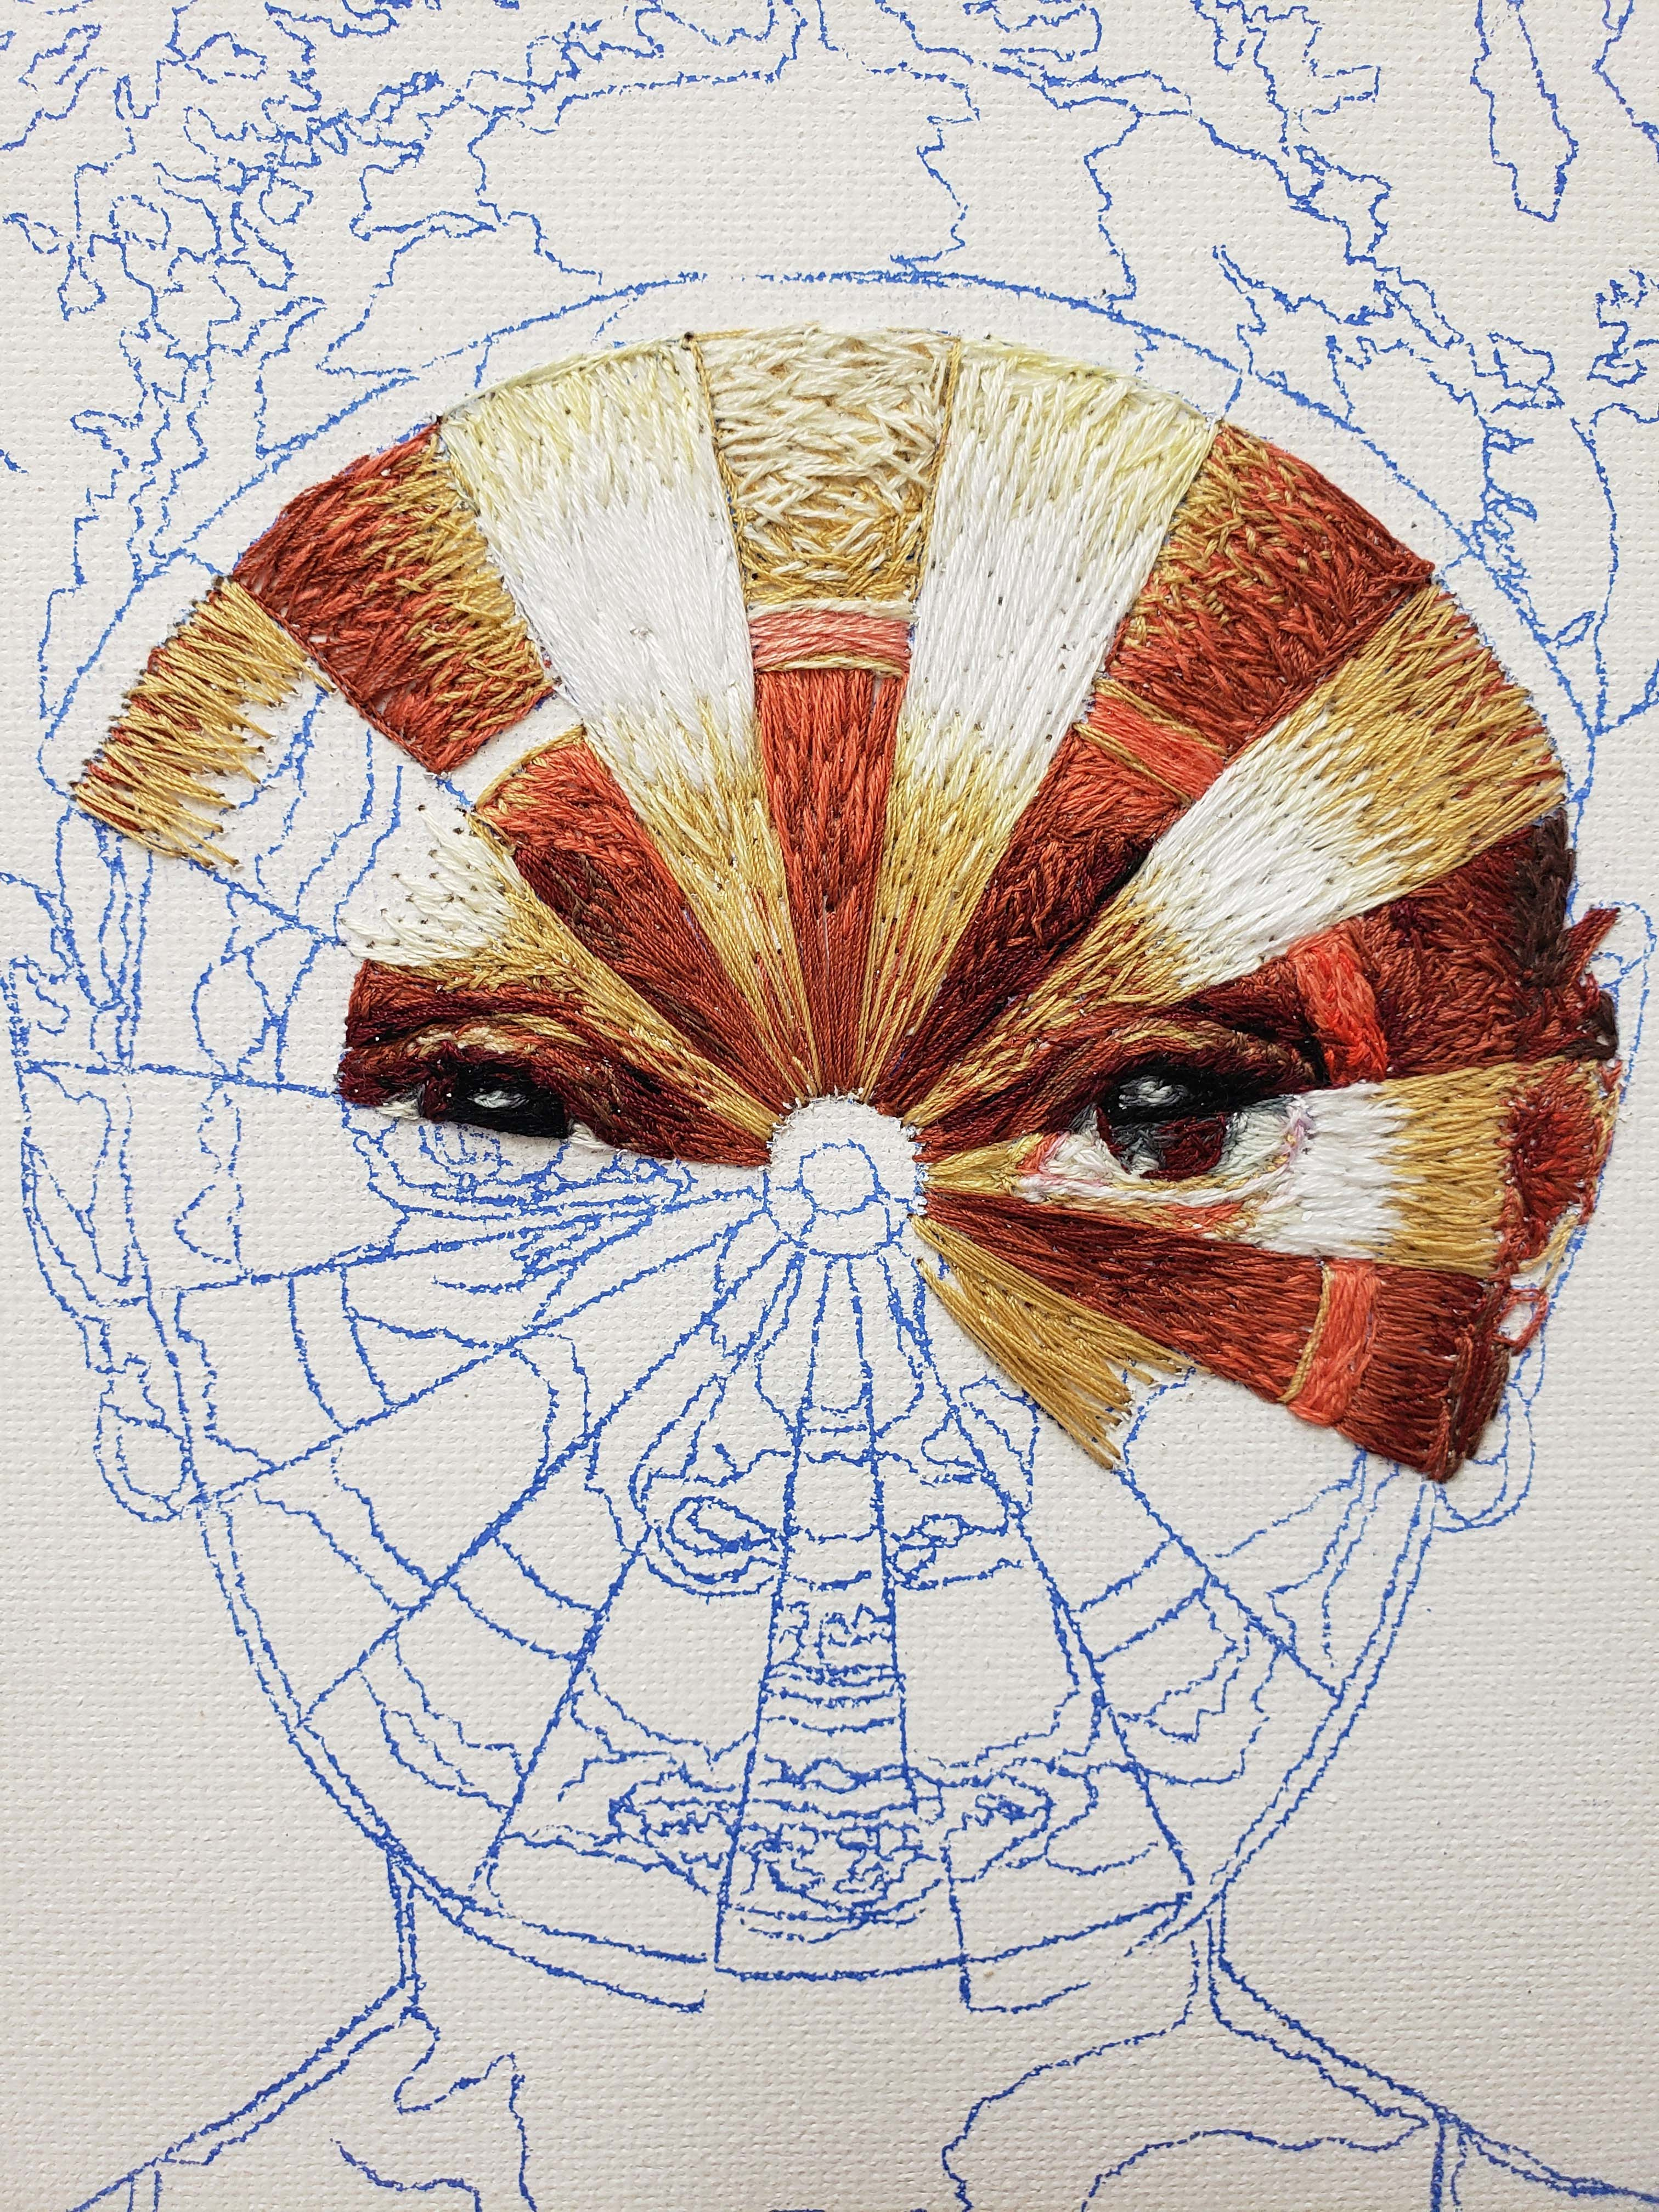 Image of in-progress hand embroidery for Dartboard Target